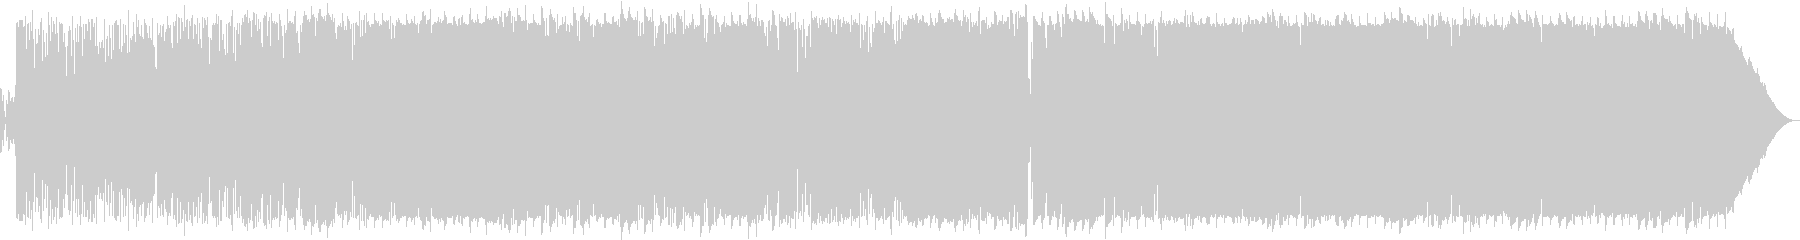 Triple time mellow love song's unreproduced waveform